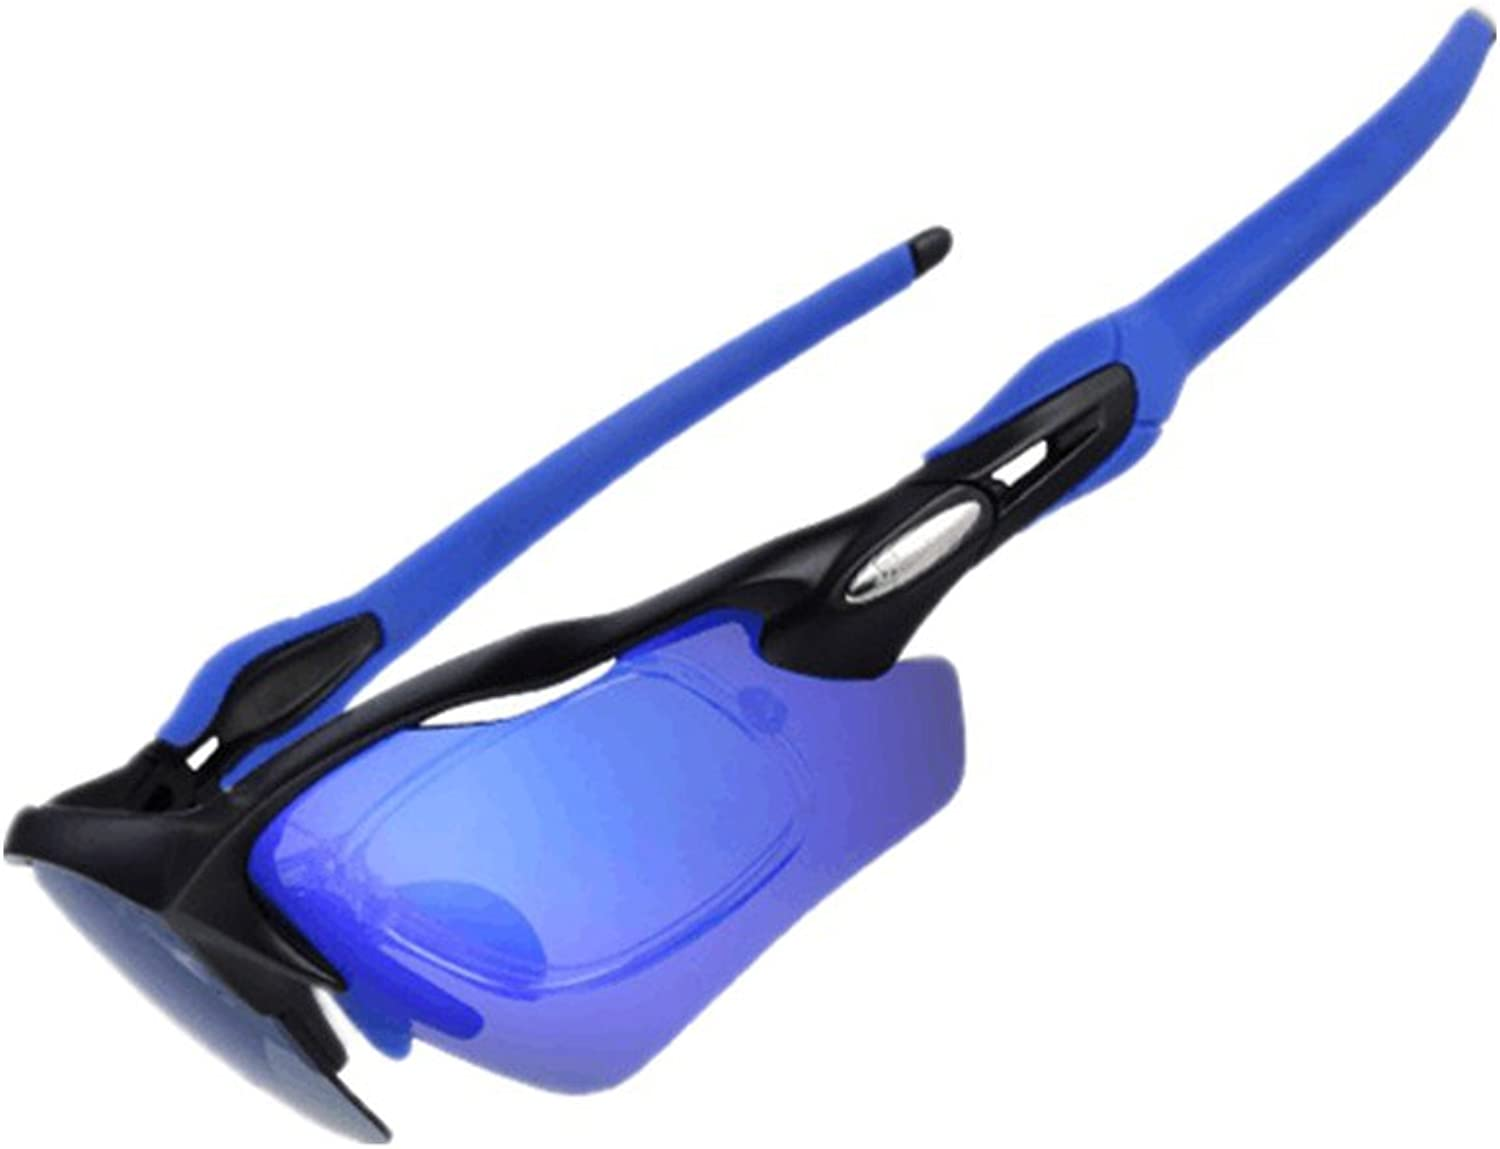 UV400 Predection Sports Sunglasses Bicycle colorChanging Adult Outdoor Glasses Suitable for Outdoor Riding Enthusiasts